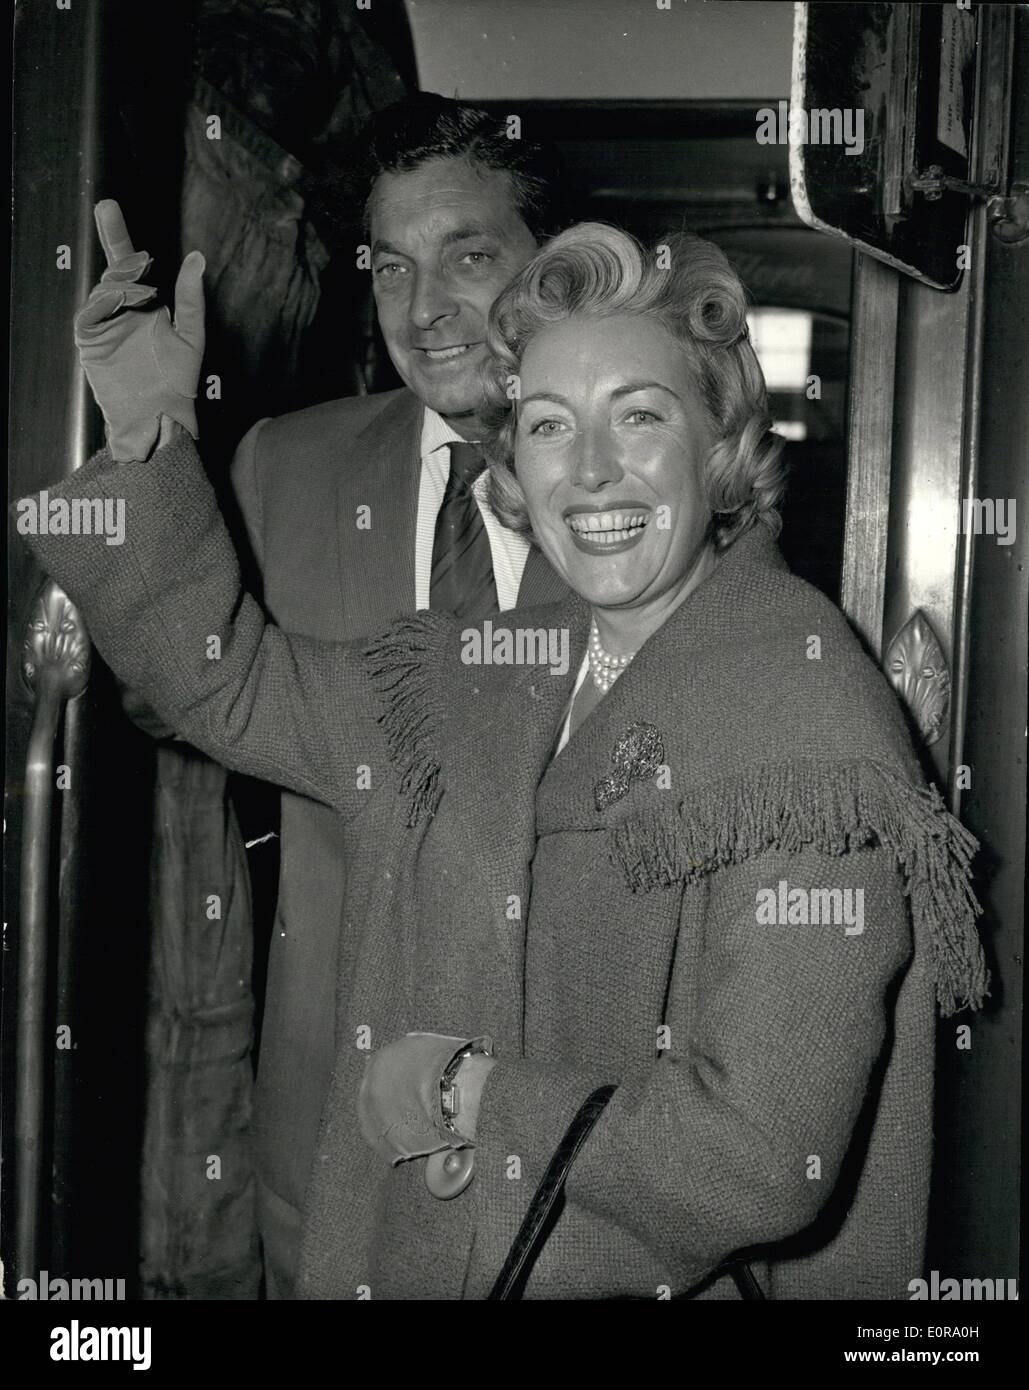 Sep. 09, 1958 - Vera Lynn Leaves For The United States. Photo shows Vera Lynn the popular British singer - and her husband Mr. Harry Lewis seen when they left Waterloo Station this morning on the s.s. Queen Elizabeth Boat Train for the United States. - Stock Image